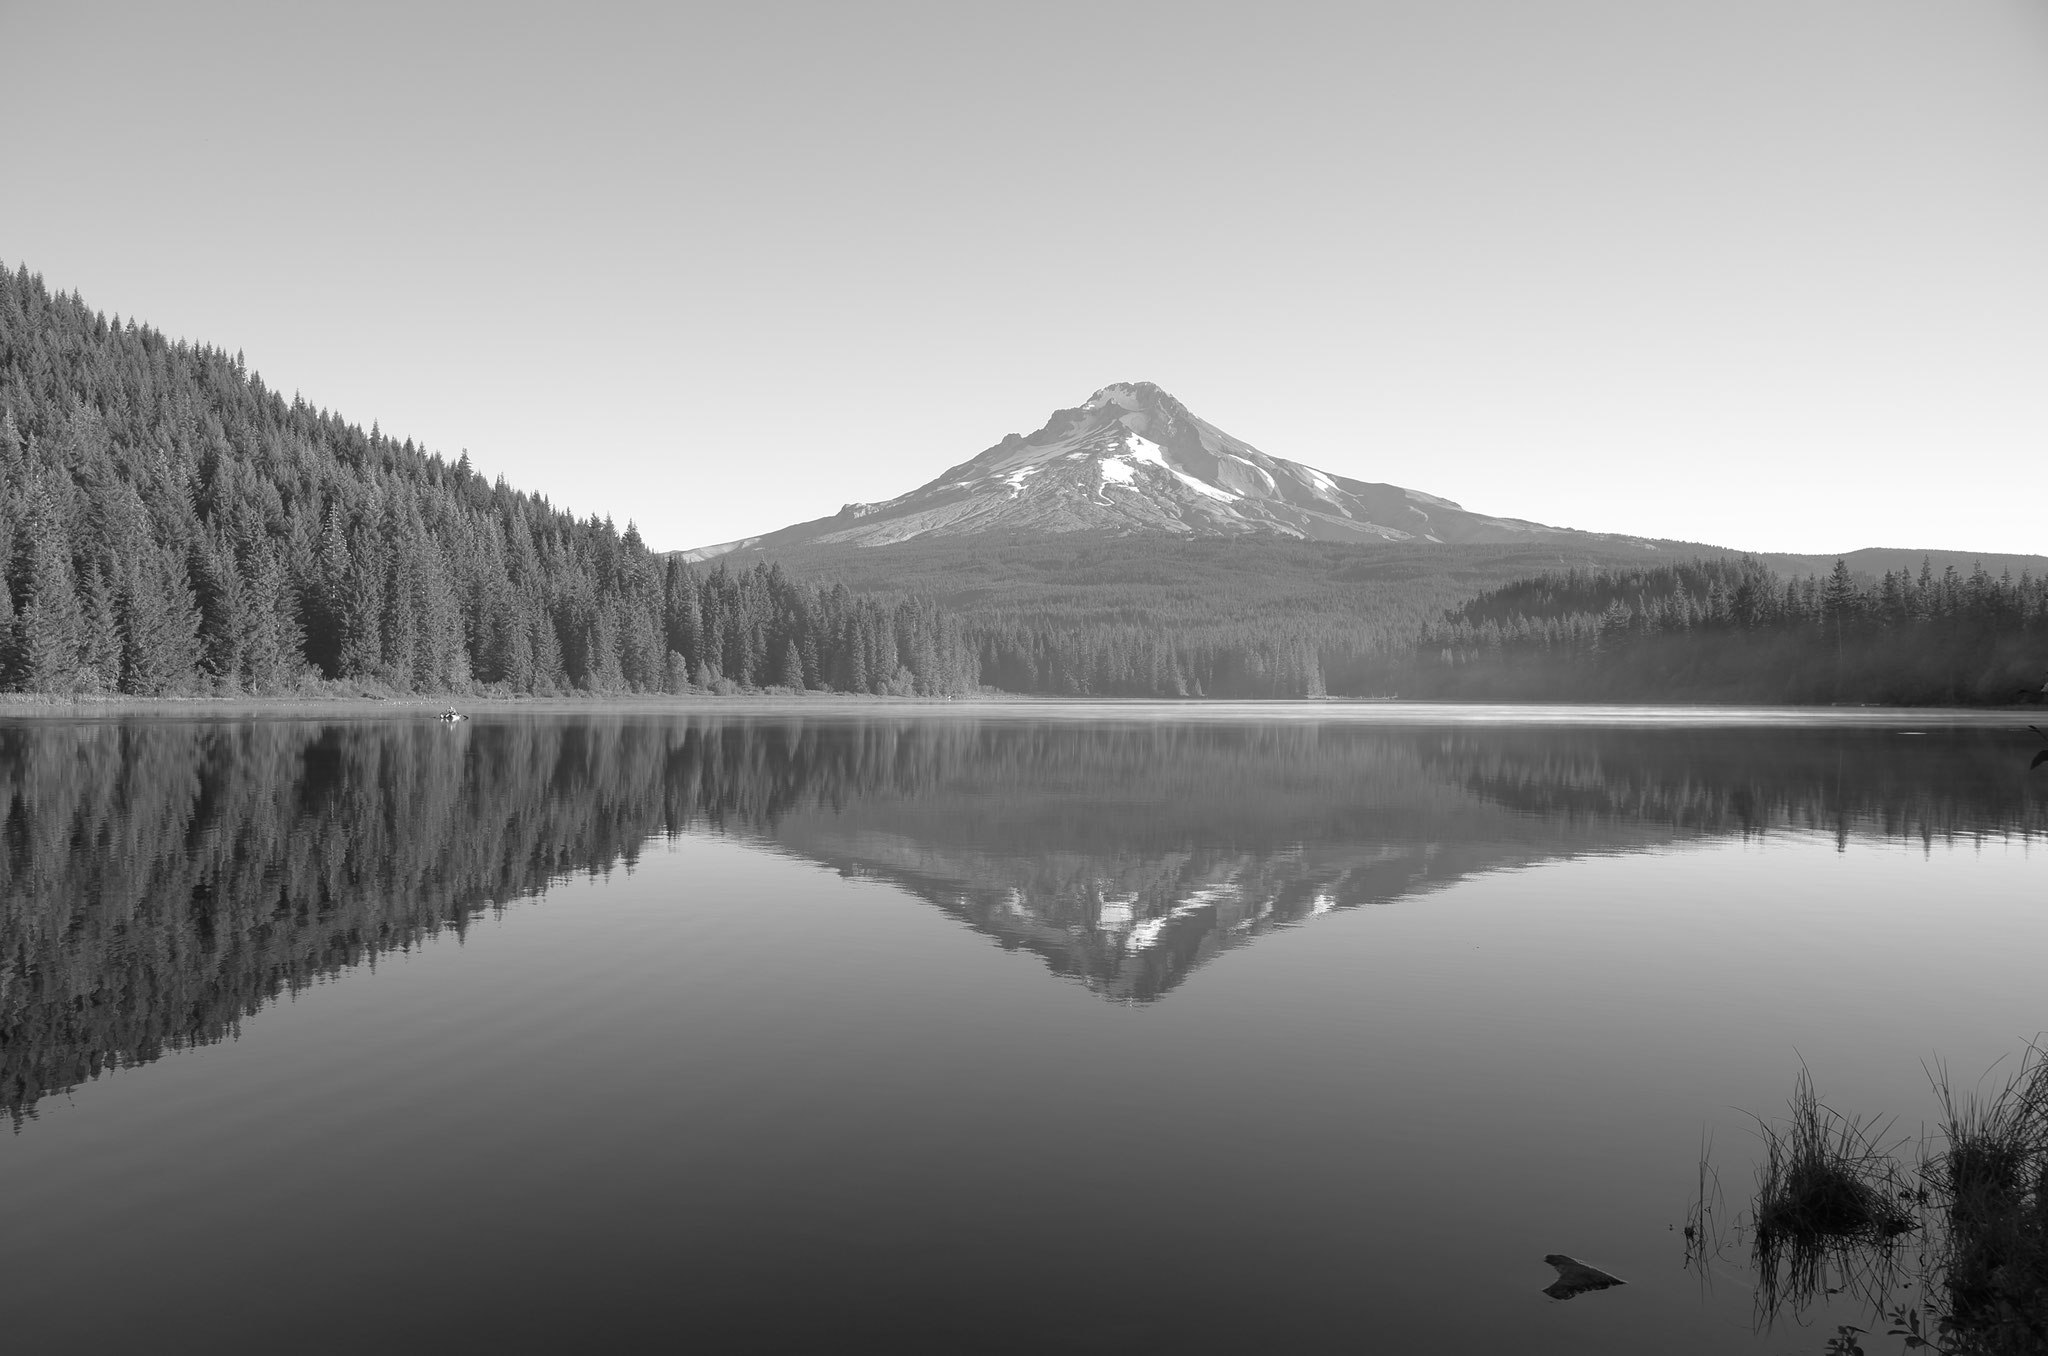 Trillium Lake, U.S., Elmarit 24(36)mm